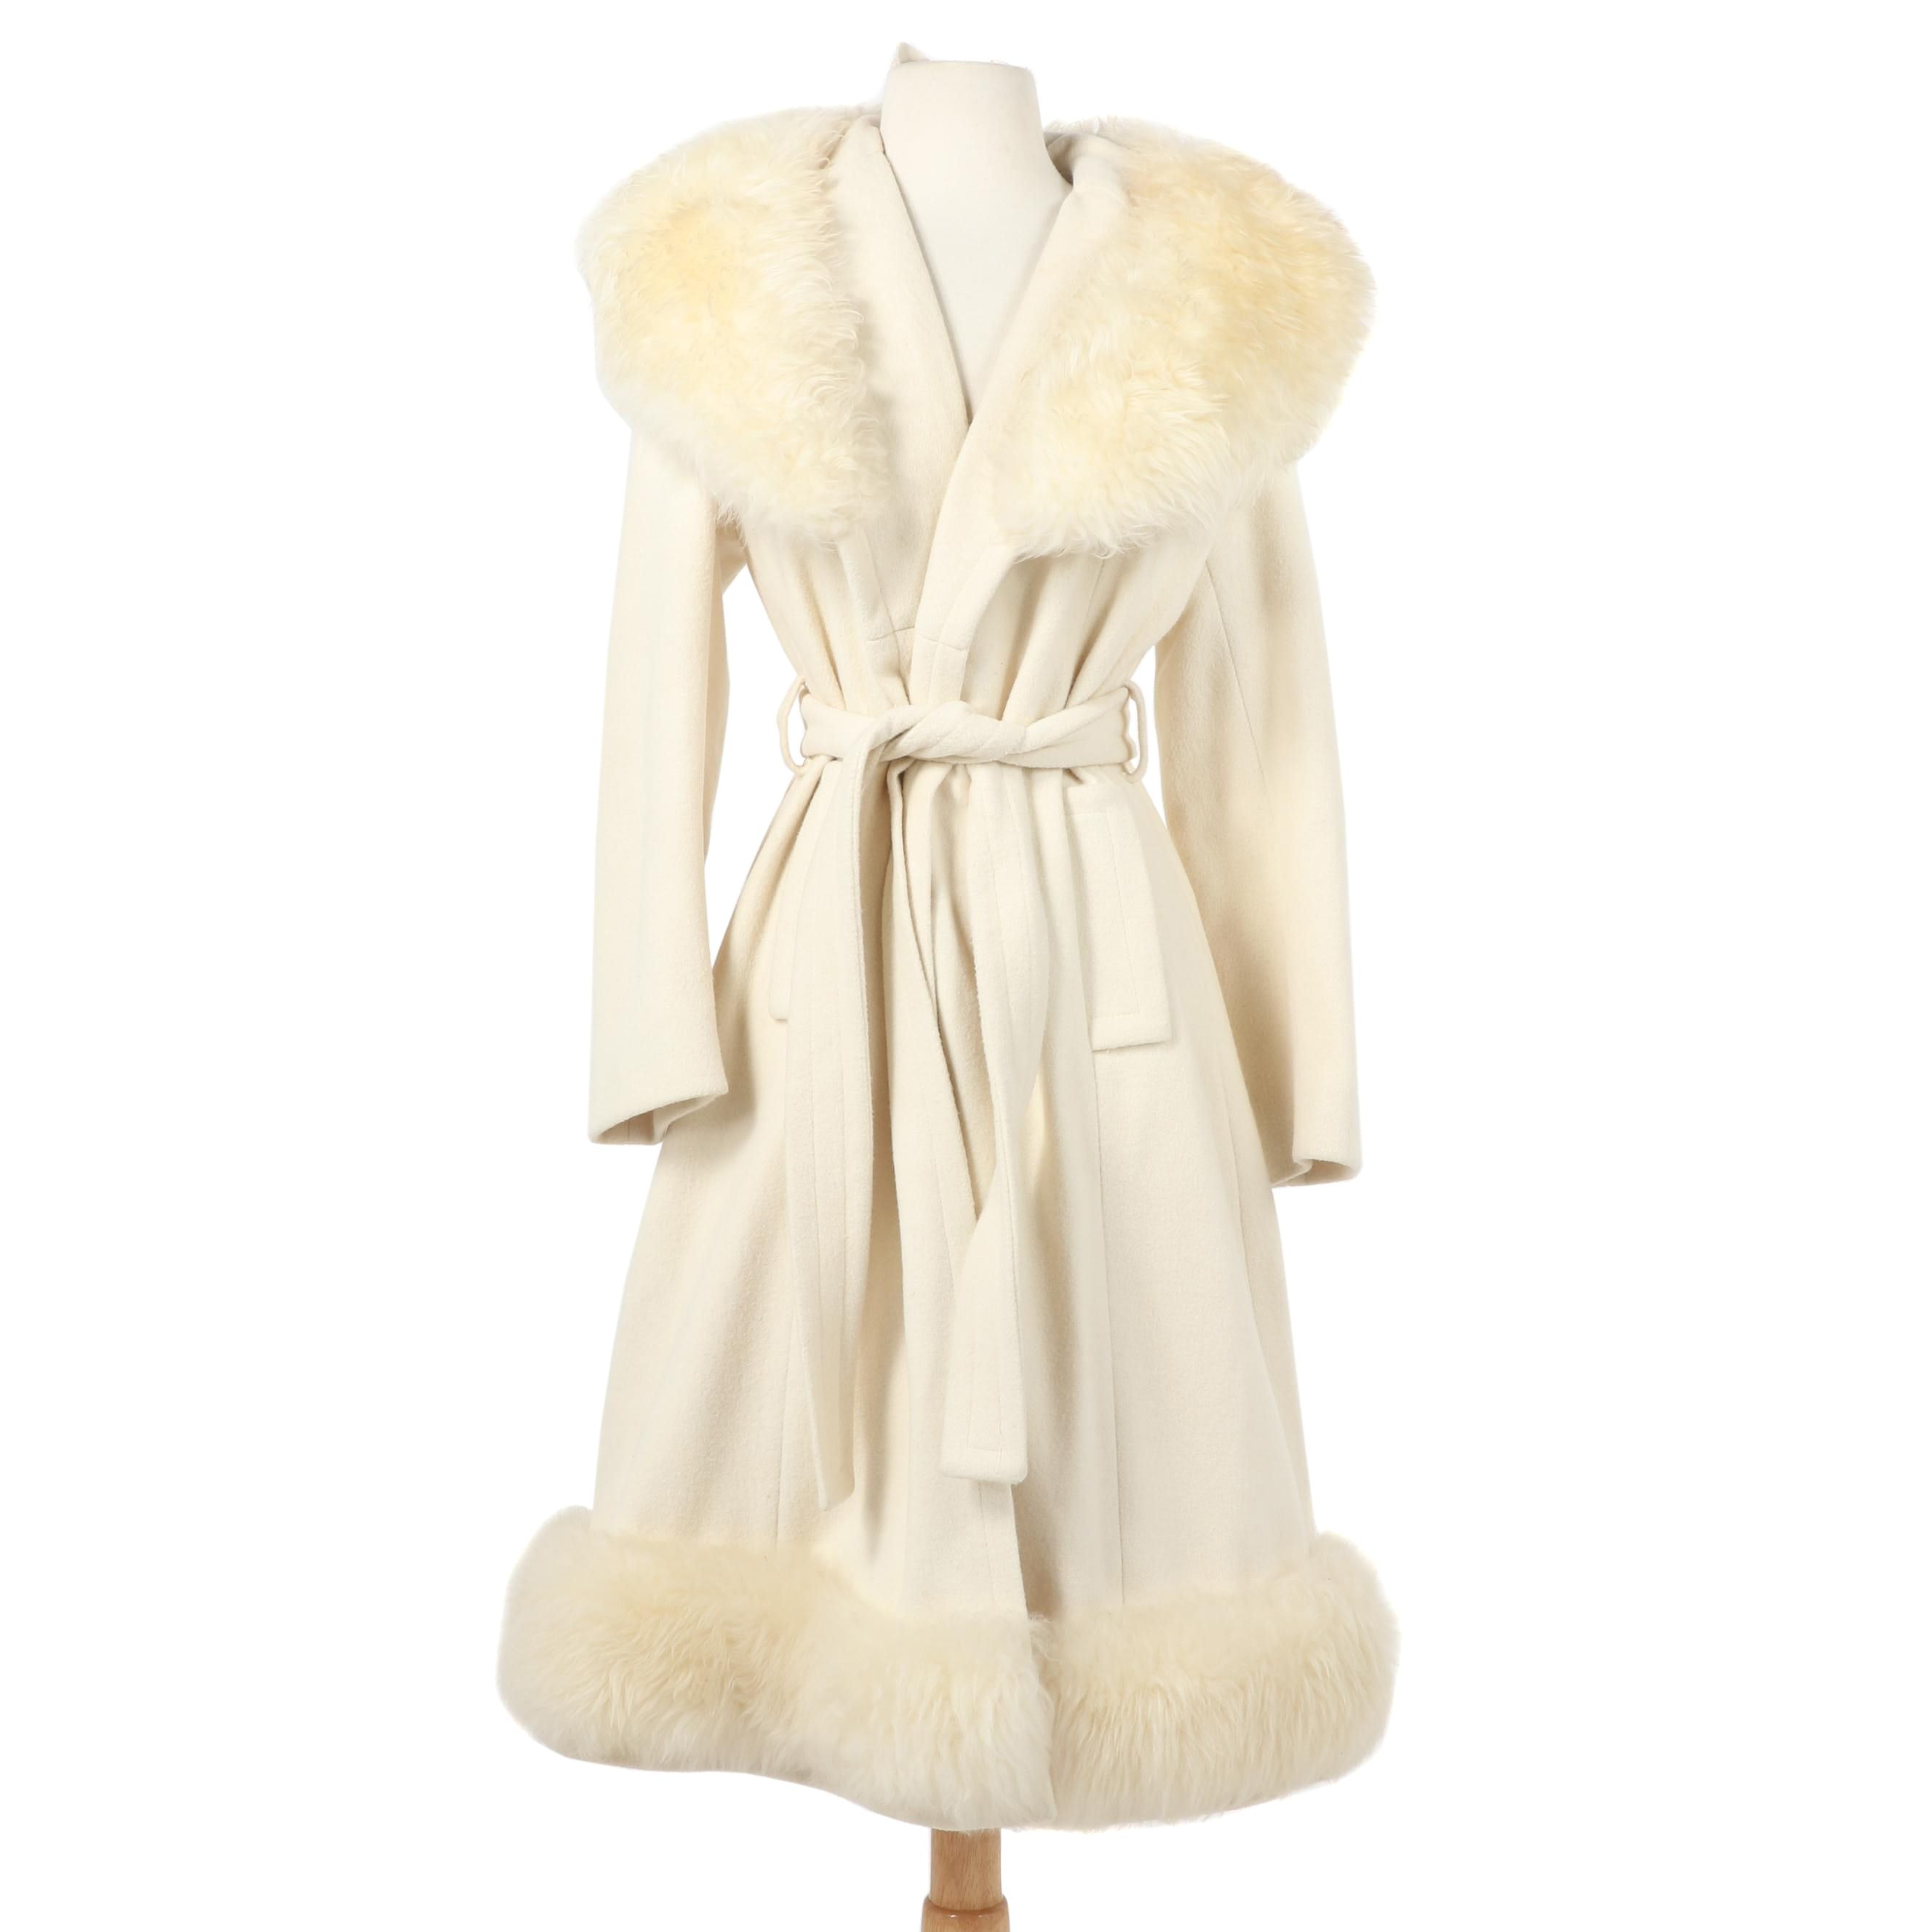 Women's Off-White Wool Wrap Coat with Shearling Collar and Trim, Vintage